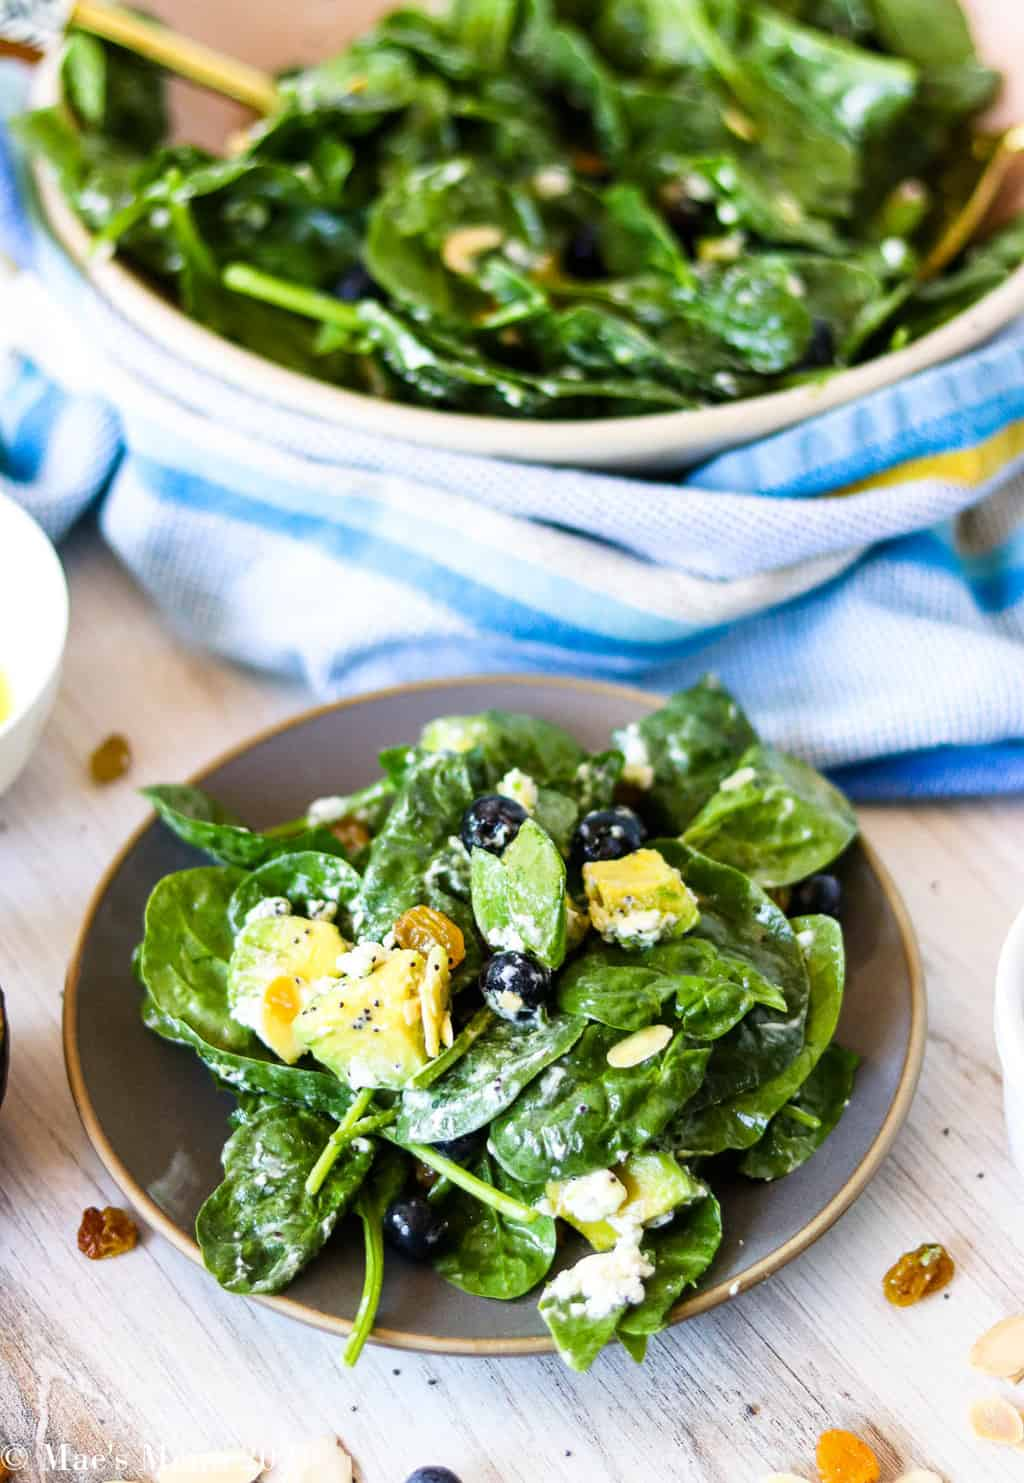 A small plate of blueberry spinach salad in front of the bowl of salad